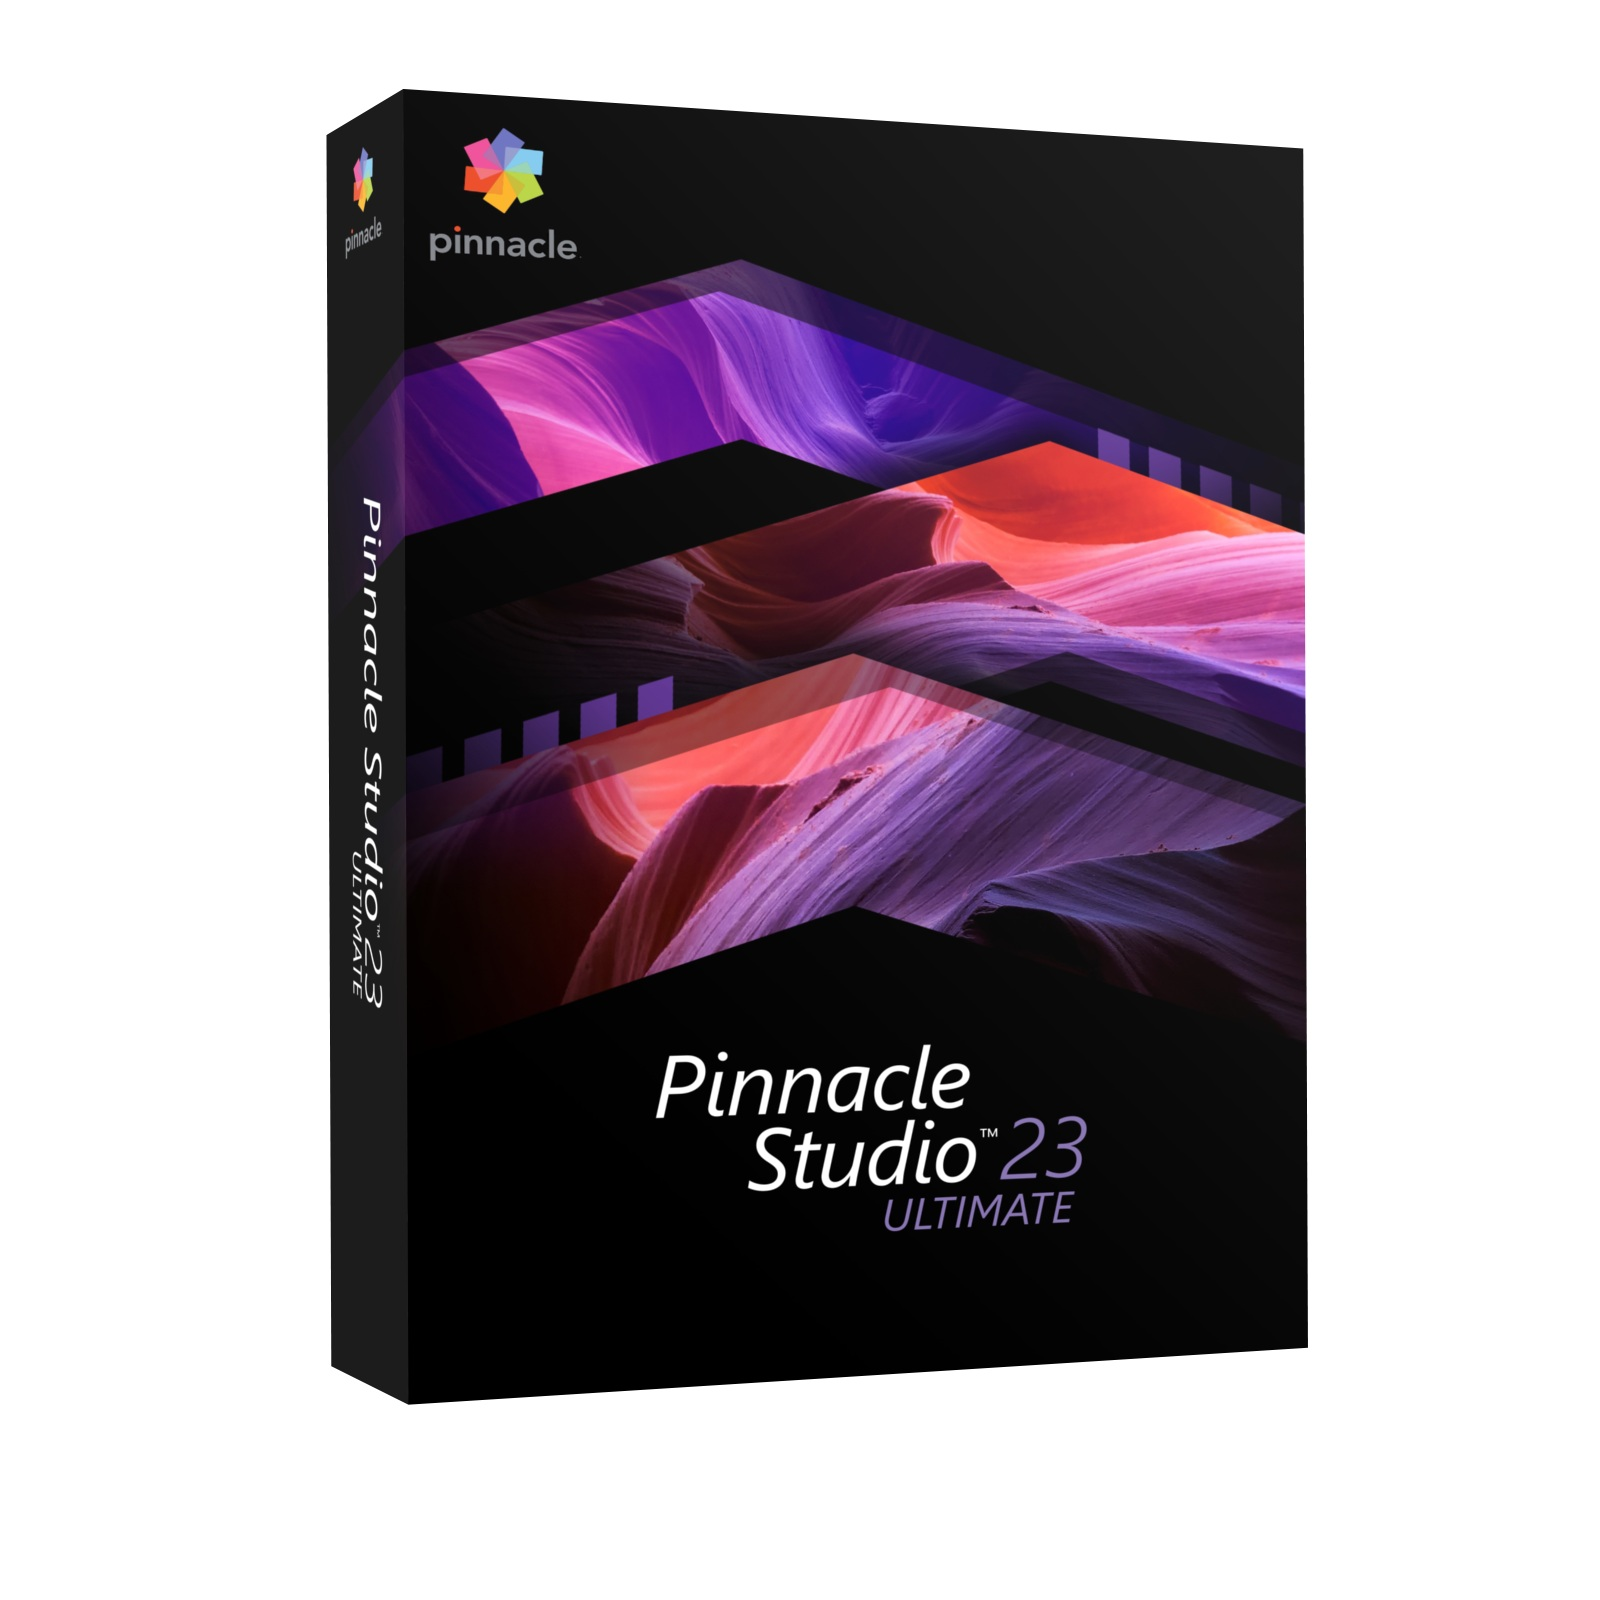 Pinnacle Studio 23 Ultimate (box) CZ